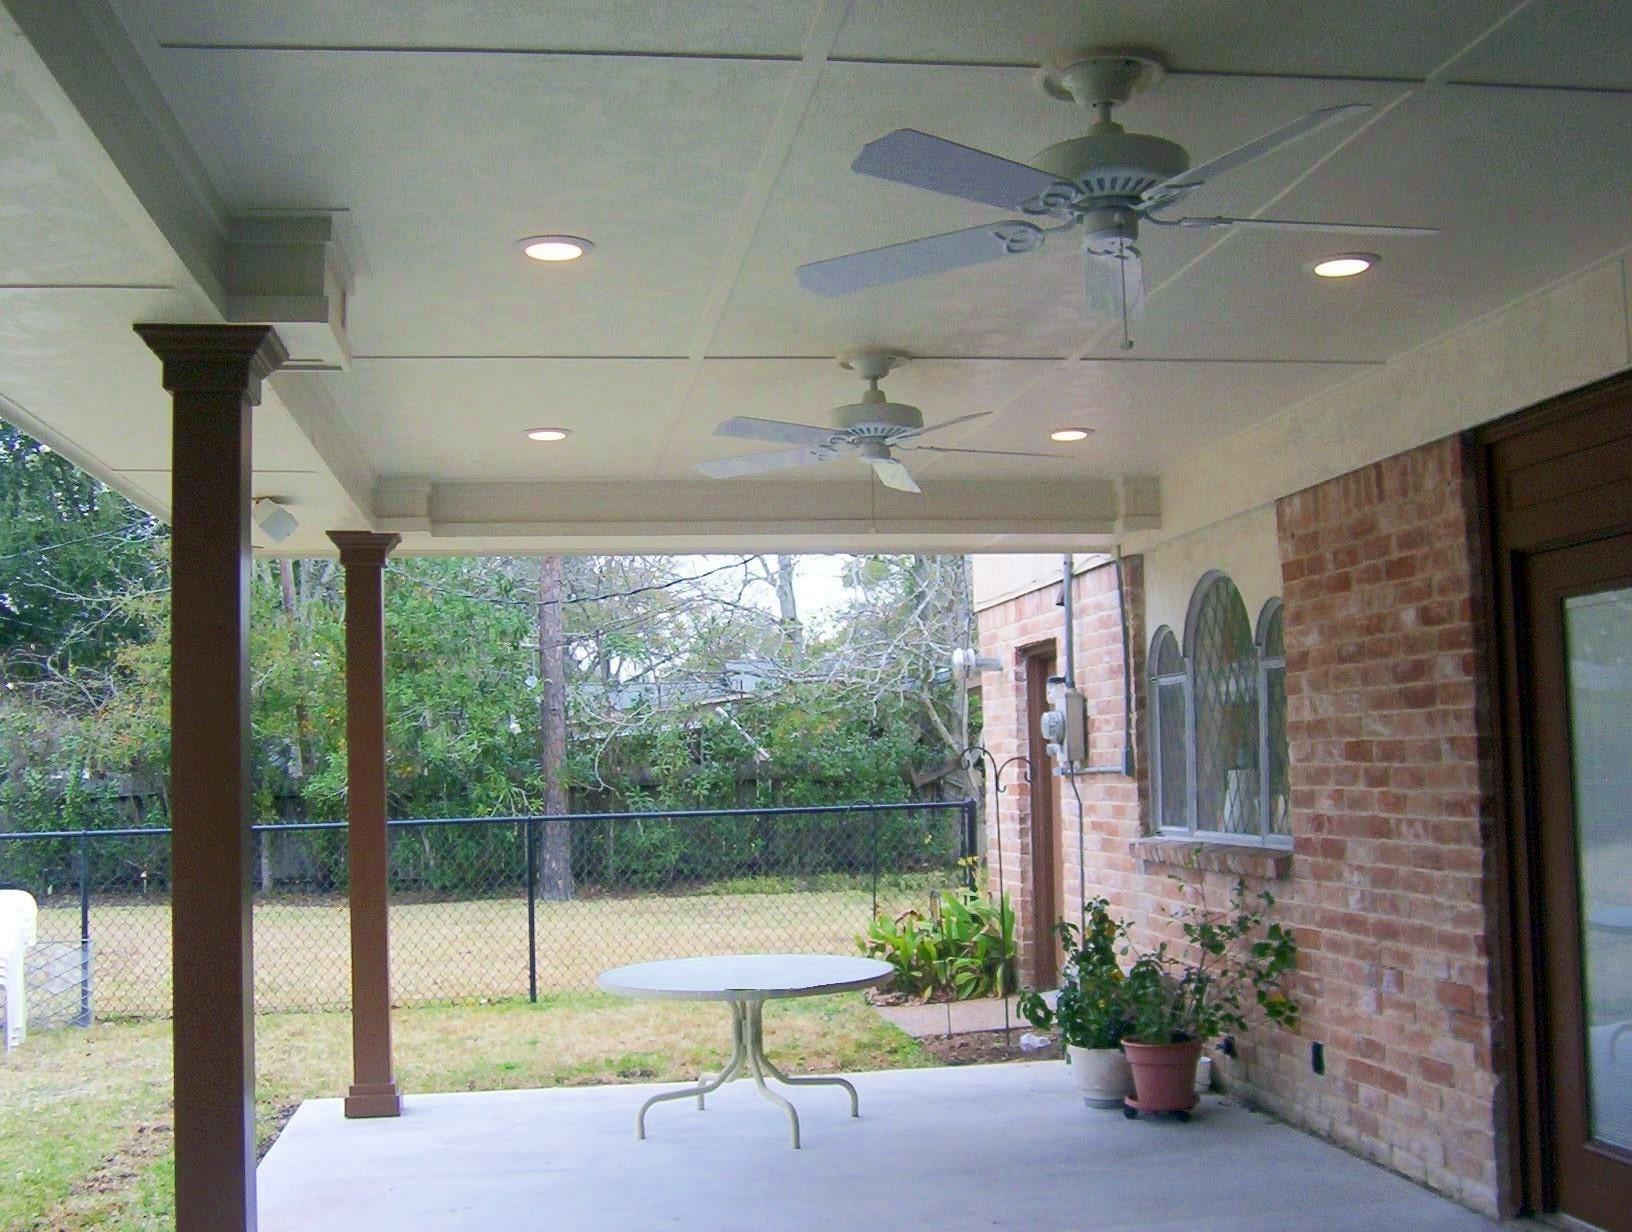 Most Current Outdoor Ceiling Fans For Patios Pertaining To Patio Outdoor Ceiling Fan With Light — Sherizampelli Landscape (View 10 of 20)